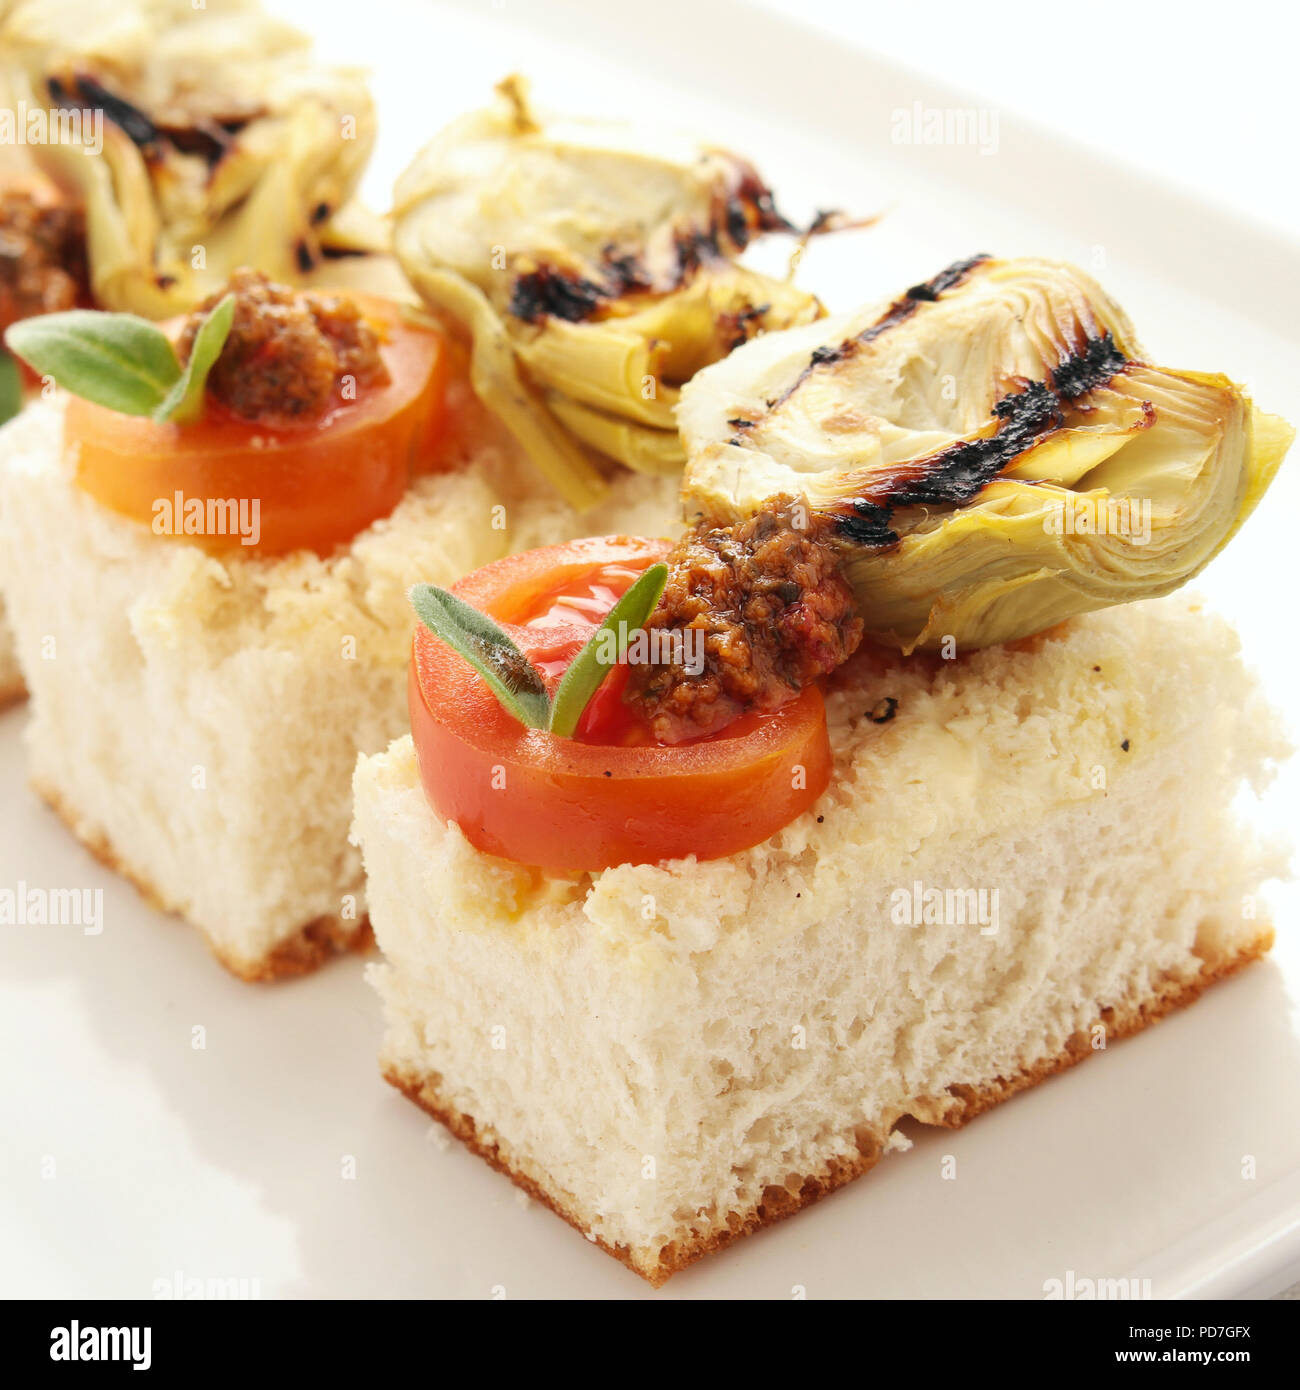 making bruschetta canapes - Stock Image